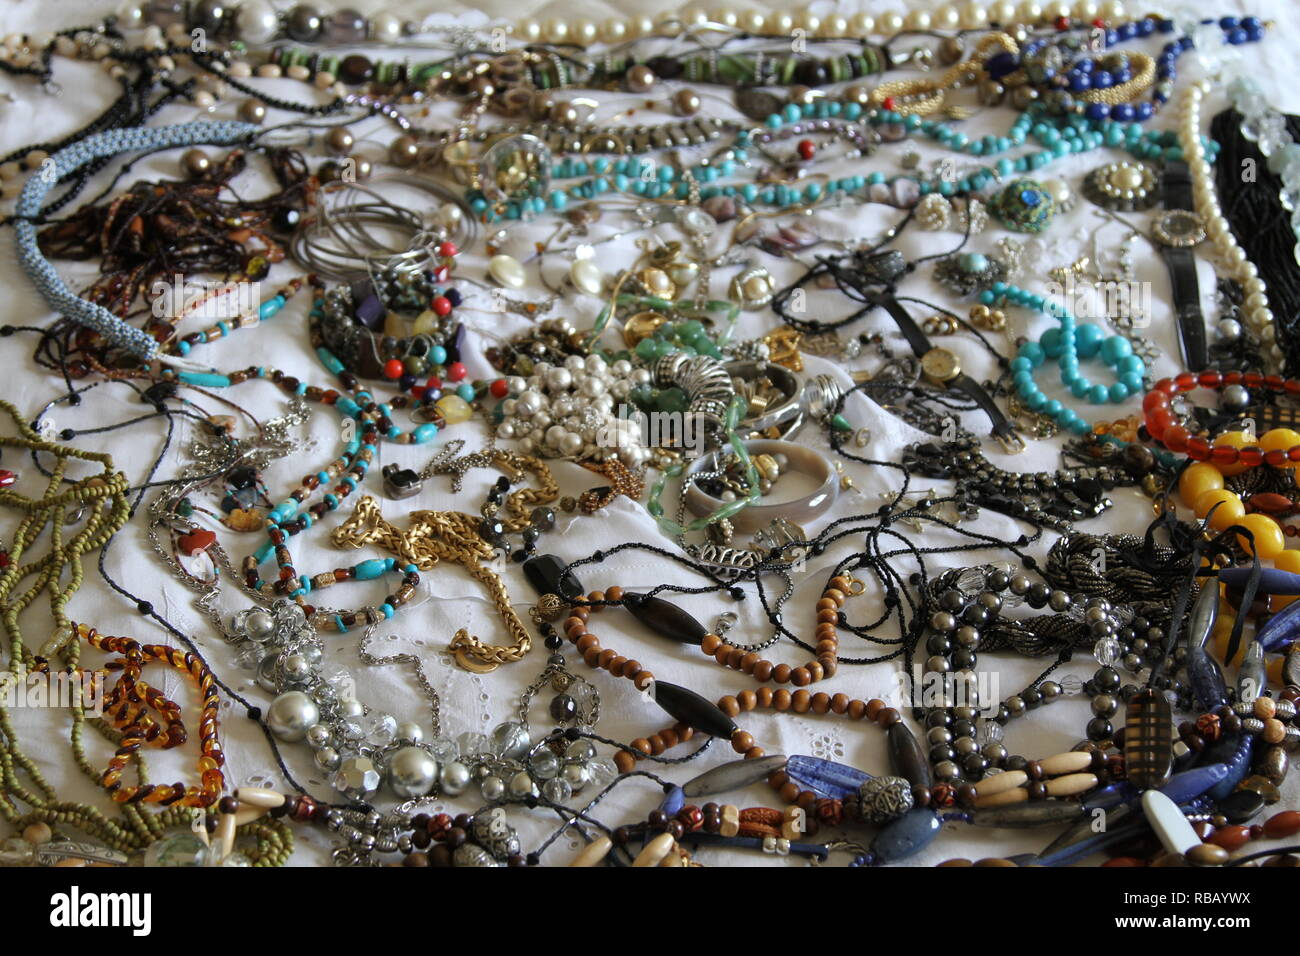 Jewellery. A collection of jewellery laid out on a bed with a white sheet. Jewells. Valuables. Personal property. Sentimental value. Stones. Pearls. Beads. Necklaces. Bracelets. A wrist watch. Multi coloured. Assortment. Stock Photo